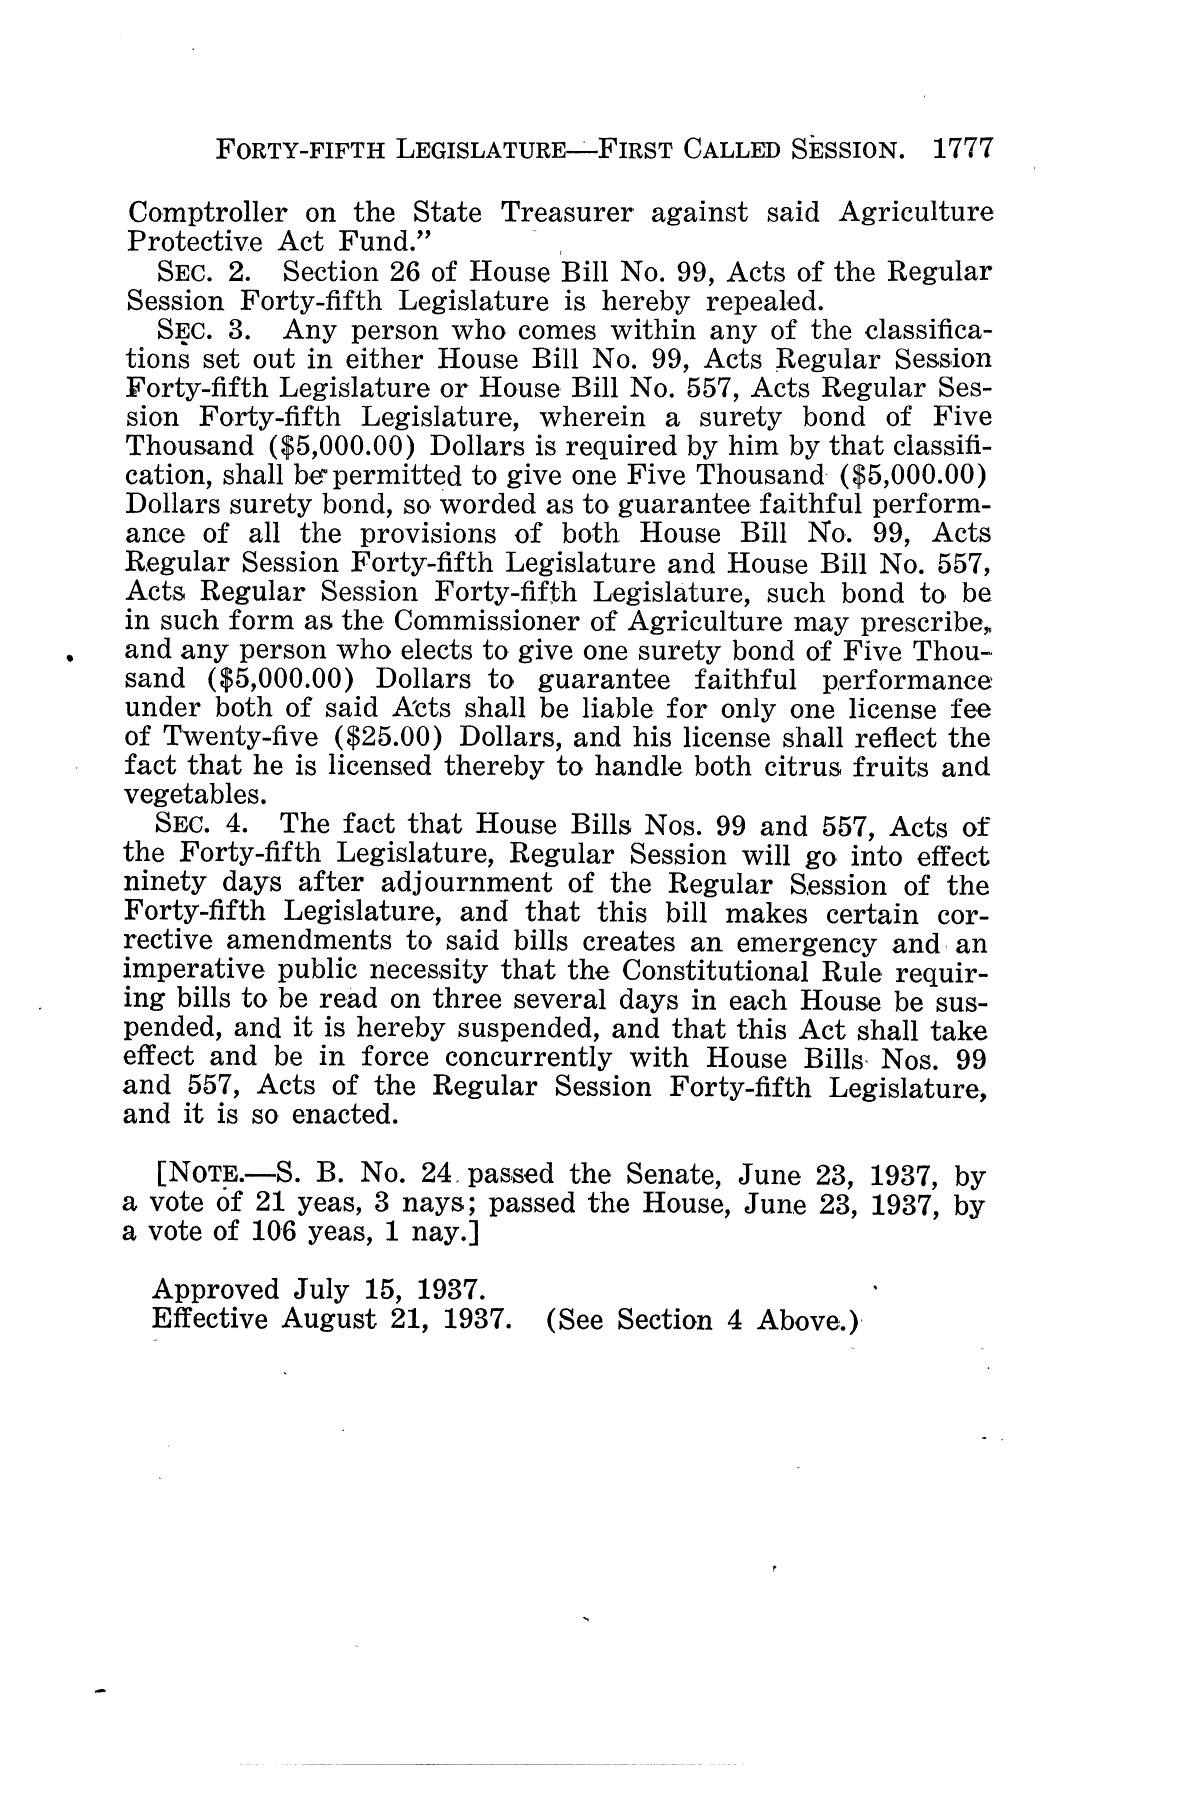 The Laws of Texas, 1937-1939 [Volume 31]                                                                                                      [Sequence #]: 49 of 1313